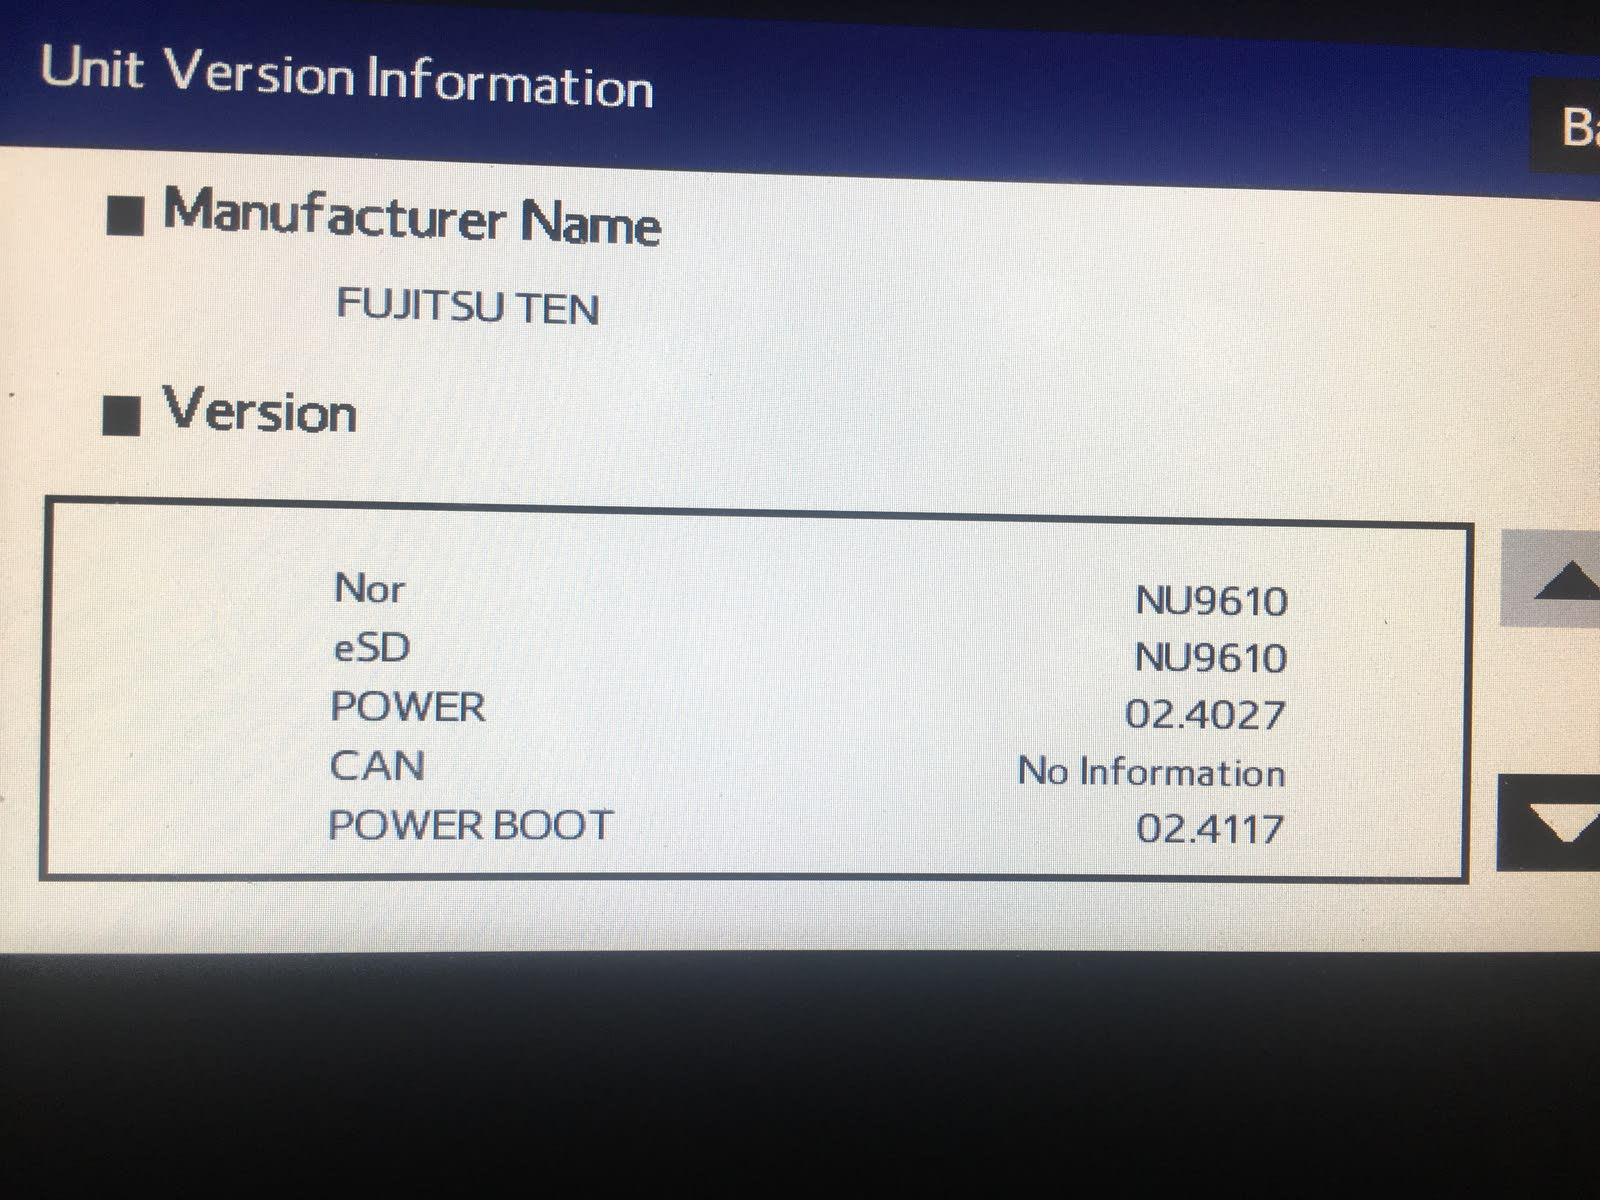 Subaru Forester Questions - SXM radio categories are not showing